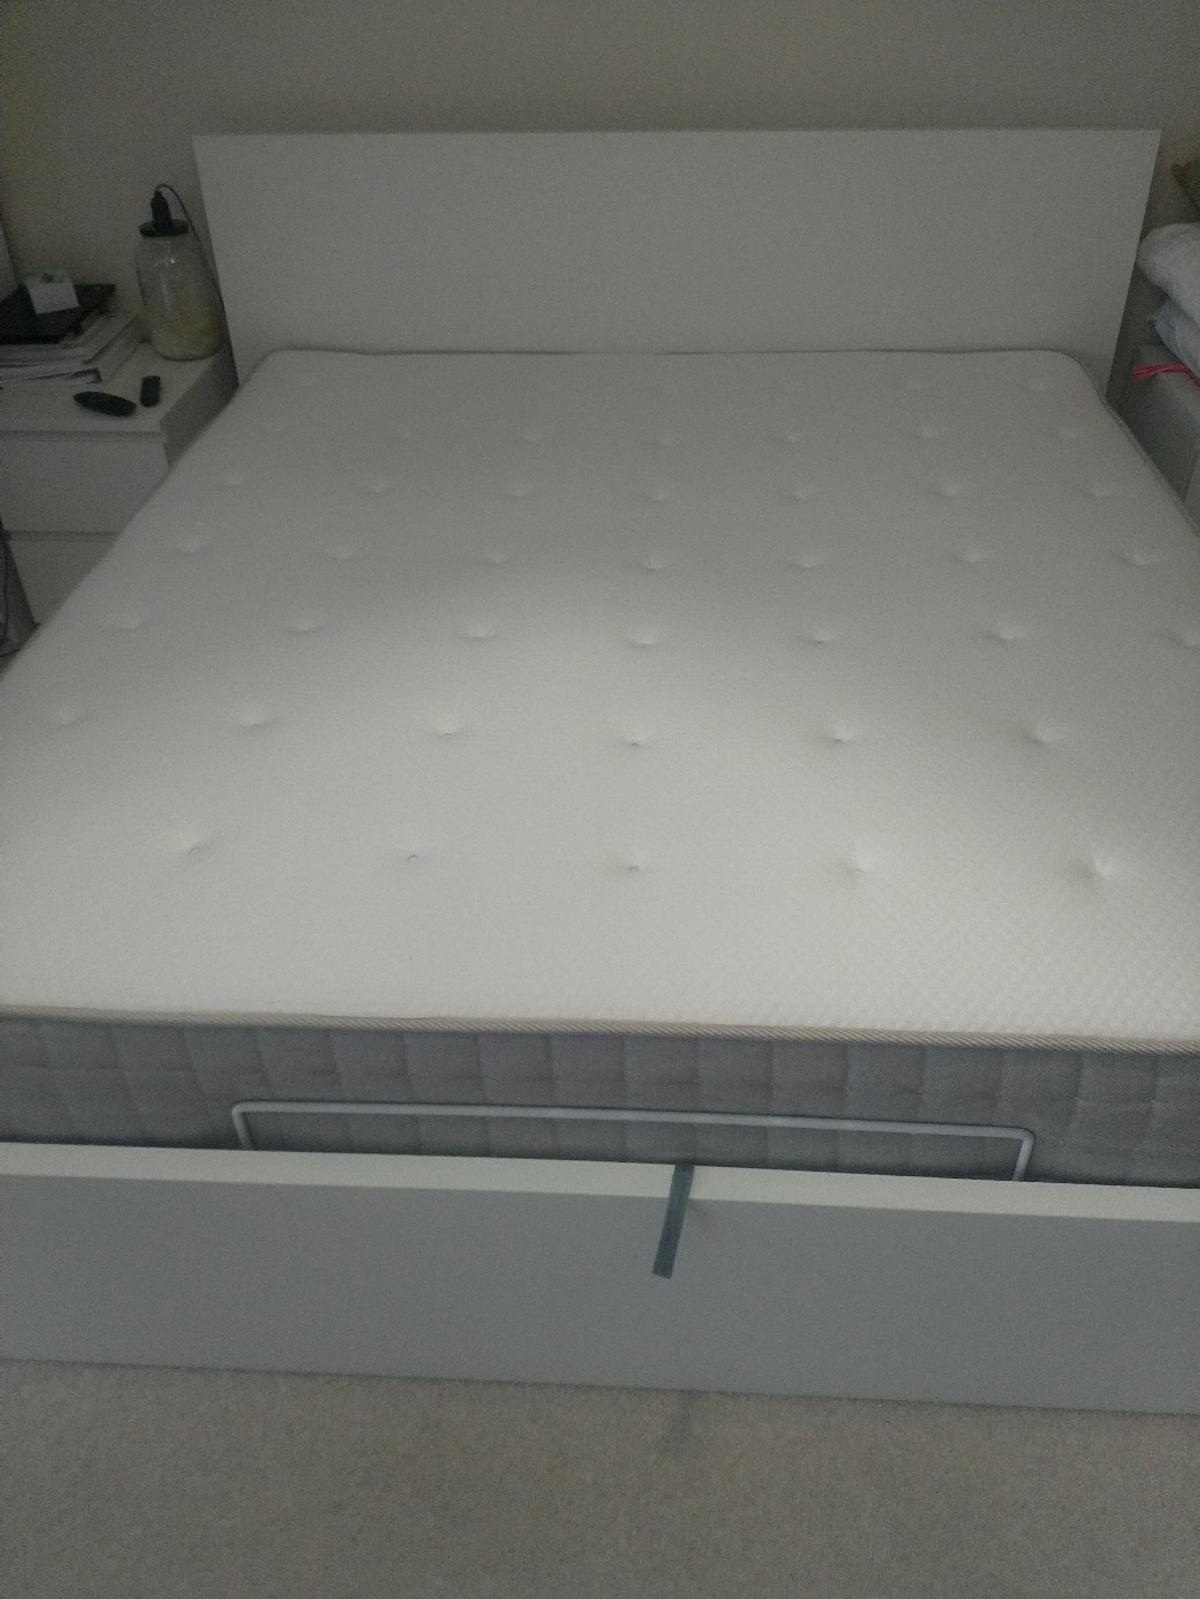 Ikea Super King Mattress Super King Size Ikea Ottoma Bed With Mattress In Se8 London For